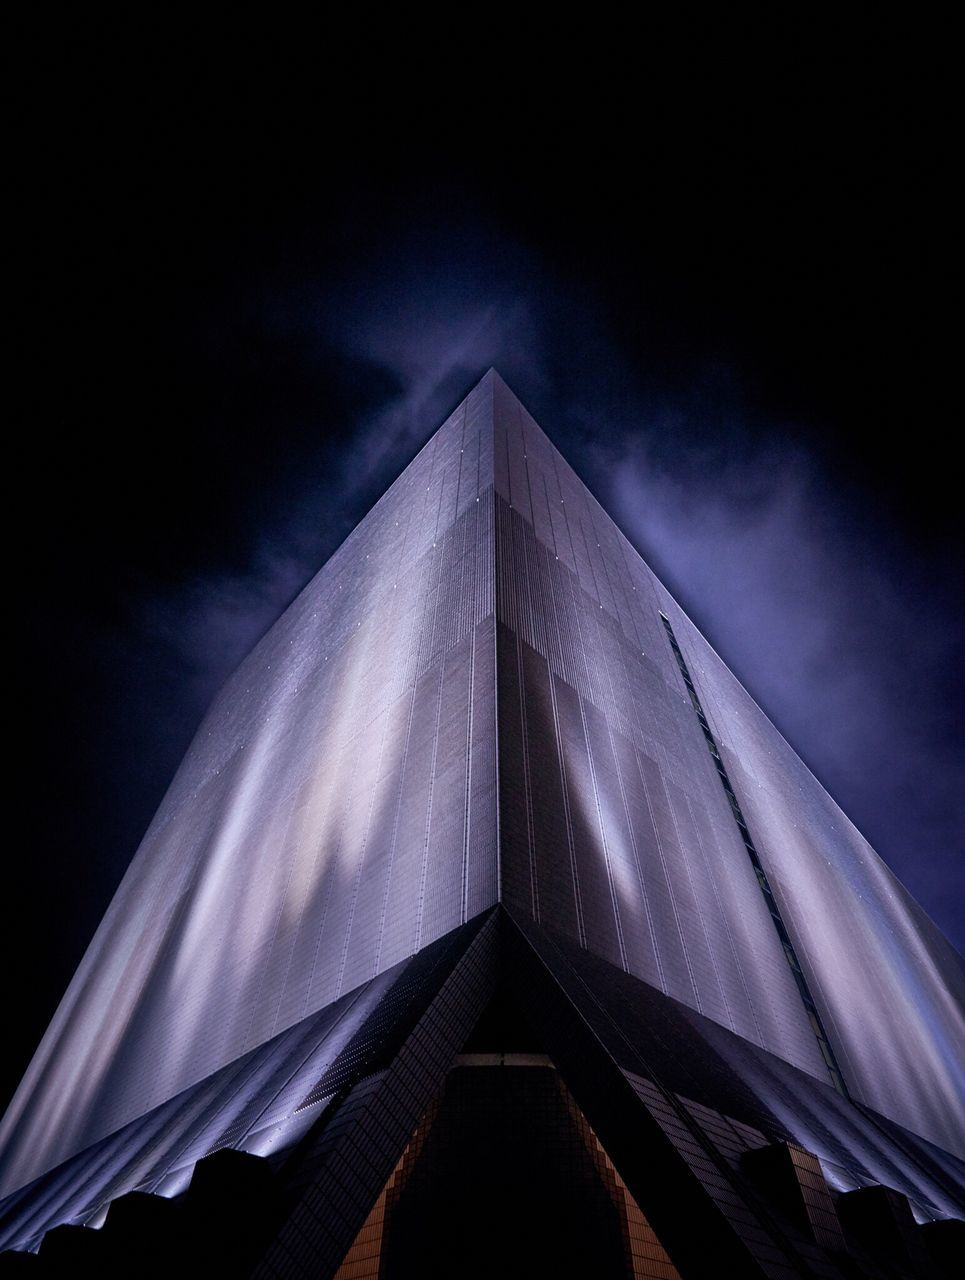 low angle view, architecture, built structure, no people, sky, building exterior, night, outdoors